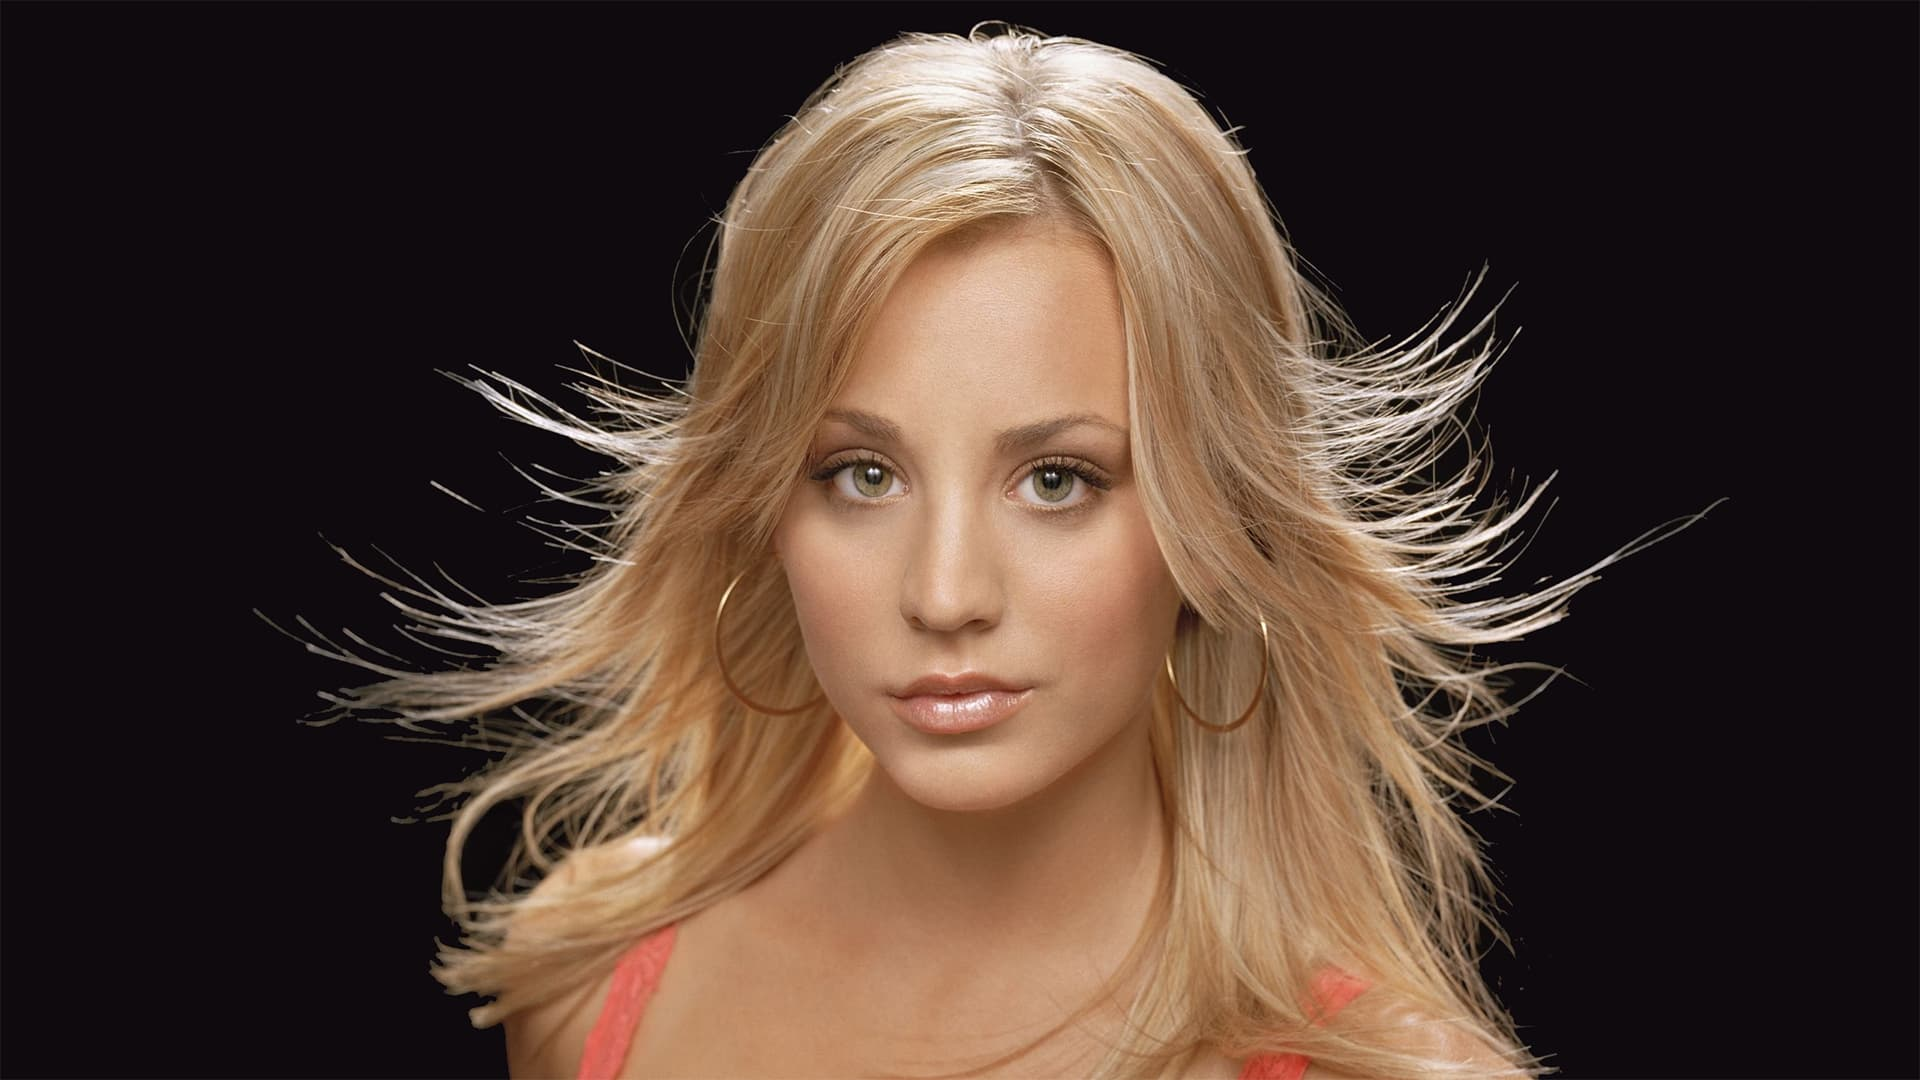 Kaley Cuoco black background wallpaper 1080p High Definition